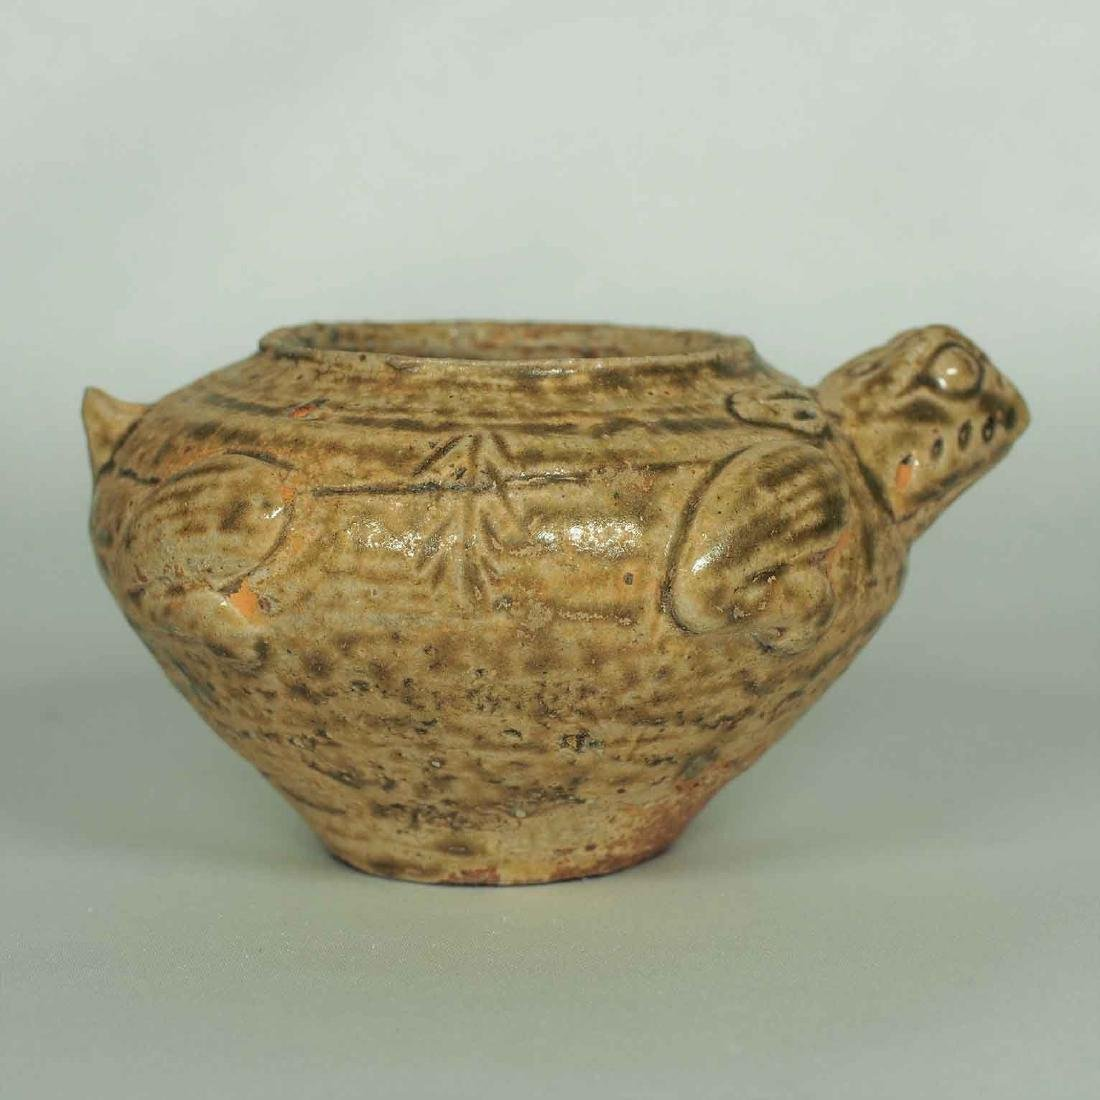 Proto-Porcelain Turtle-Form Water Pot, Han Dynasty - 2